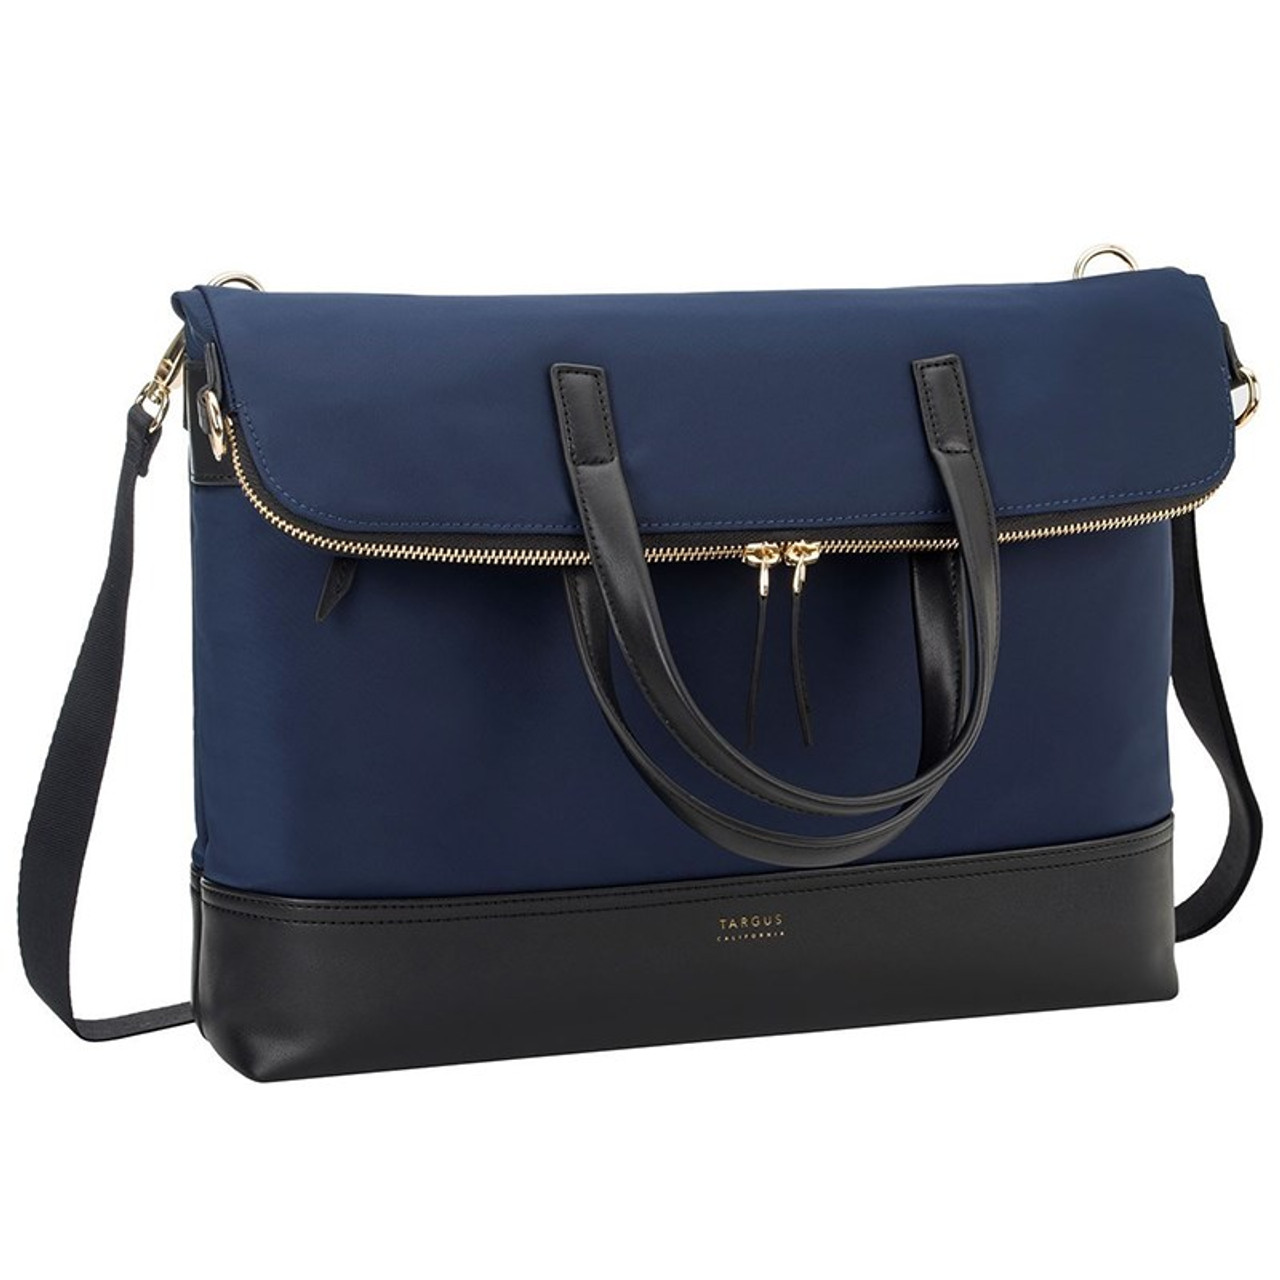 Image for Targus 15in Newport Convertible 2-in-1 Tote/Messenger Bag - Navy CX Computer Superstore